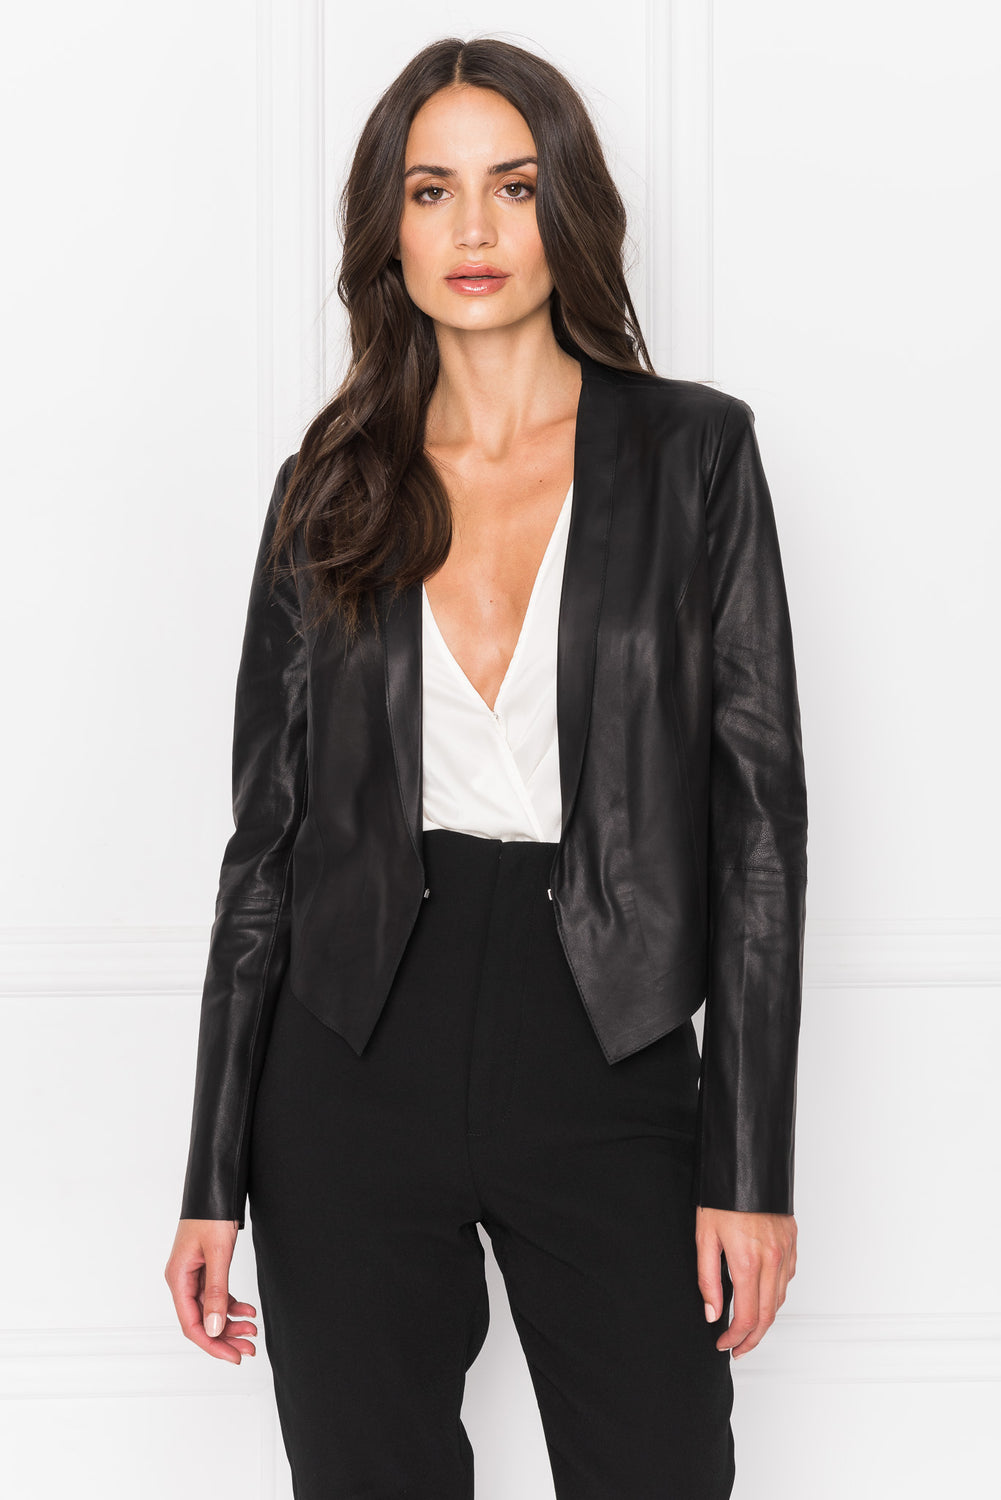 ROSE Black Lightweight Blazer